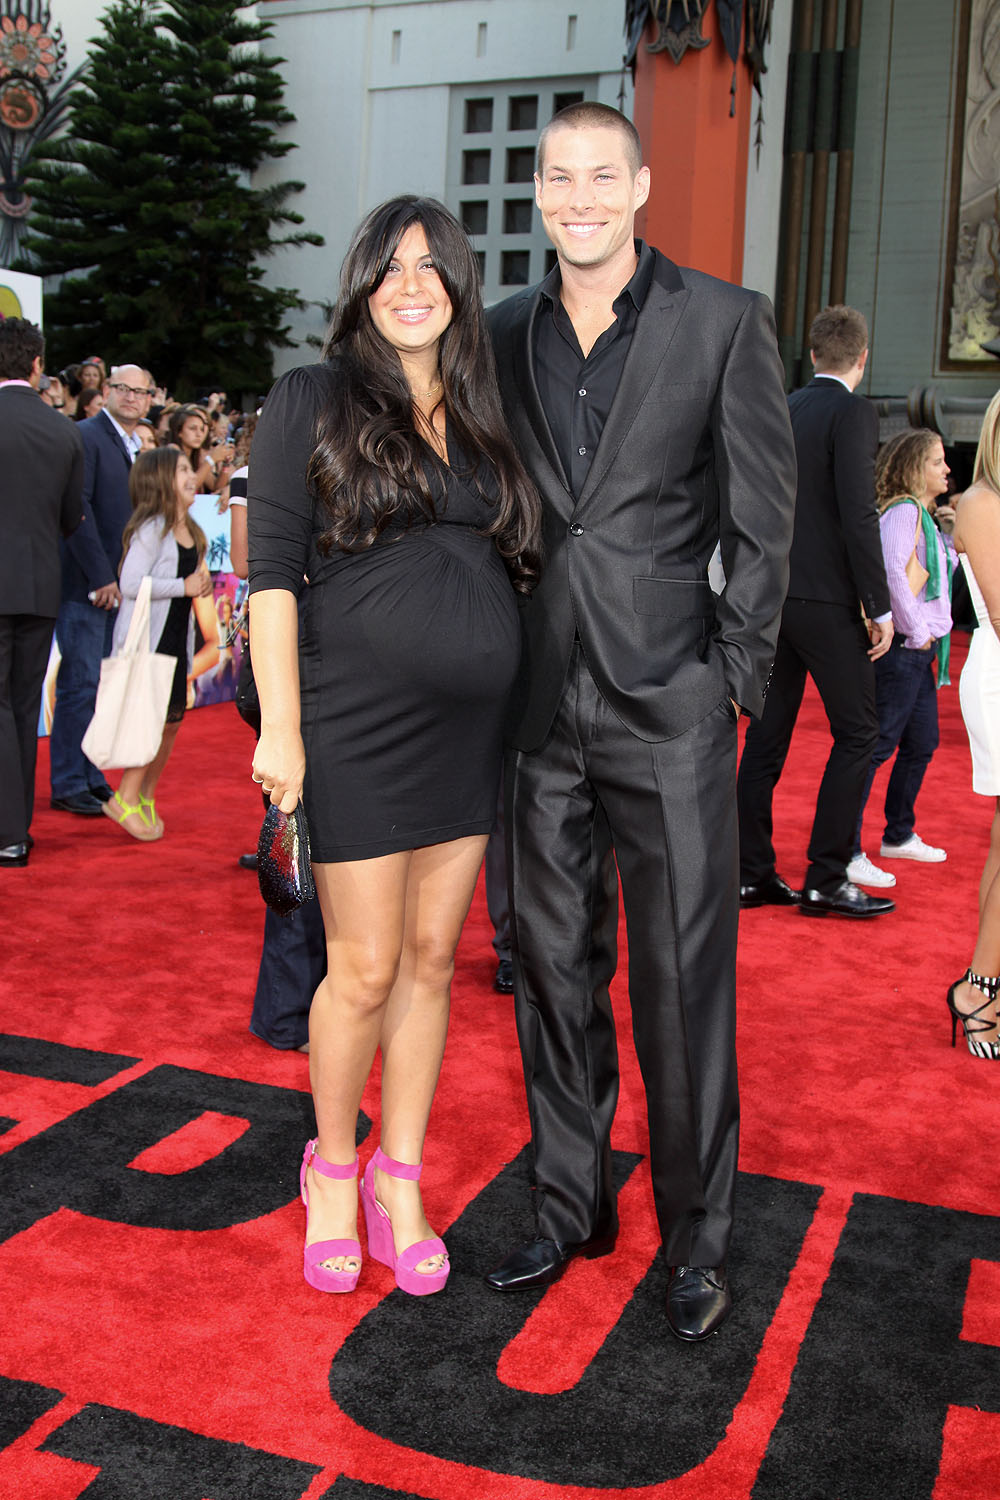 Chadd Smith And Wife At The Los Angeles Premiere Of STEP